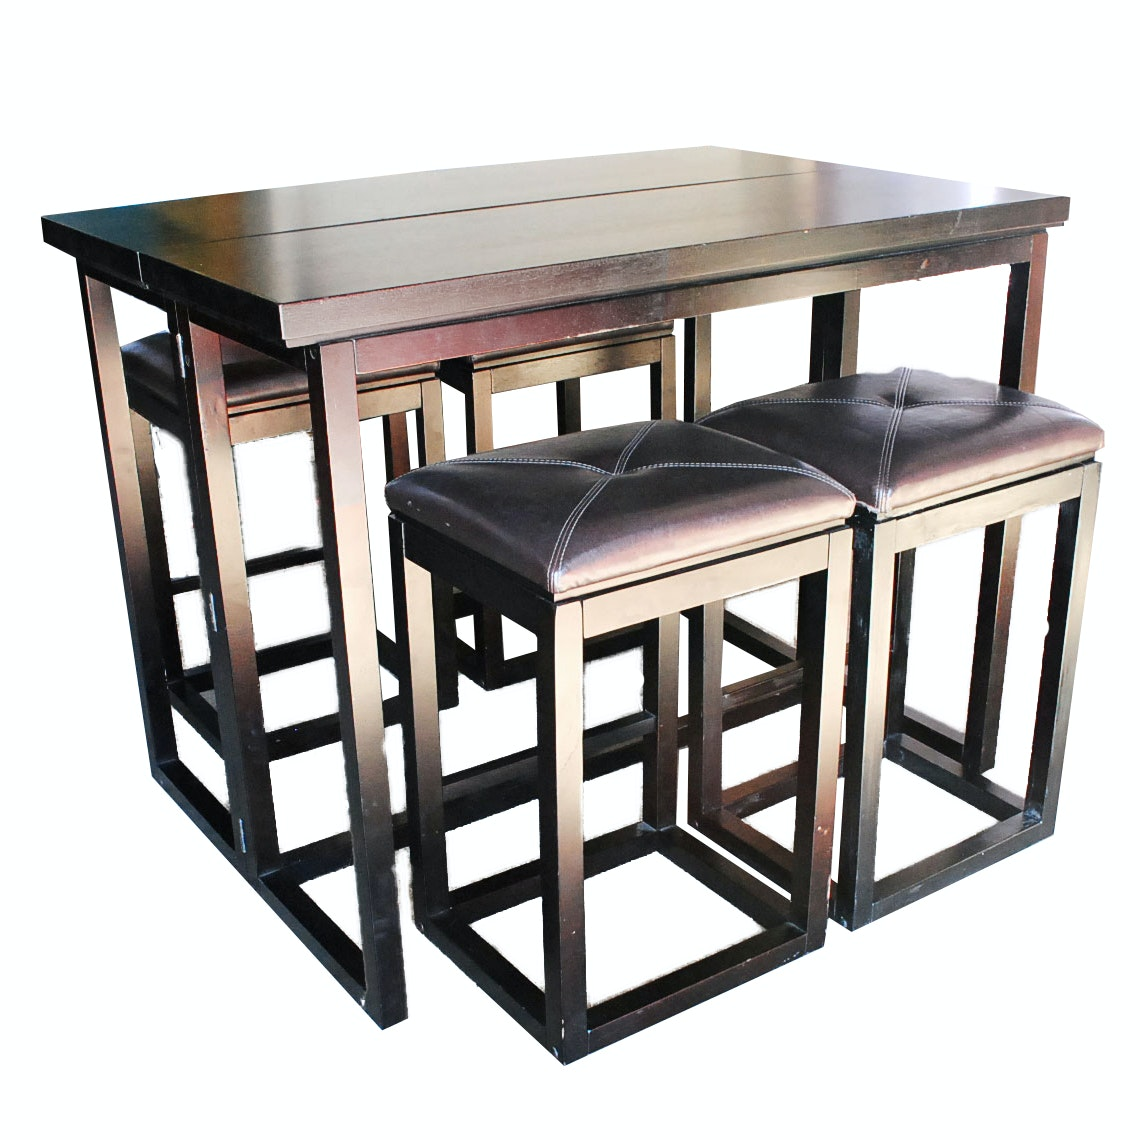 Folding Drop Leaf Table with Cushion Top Stools